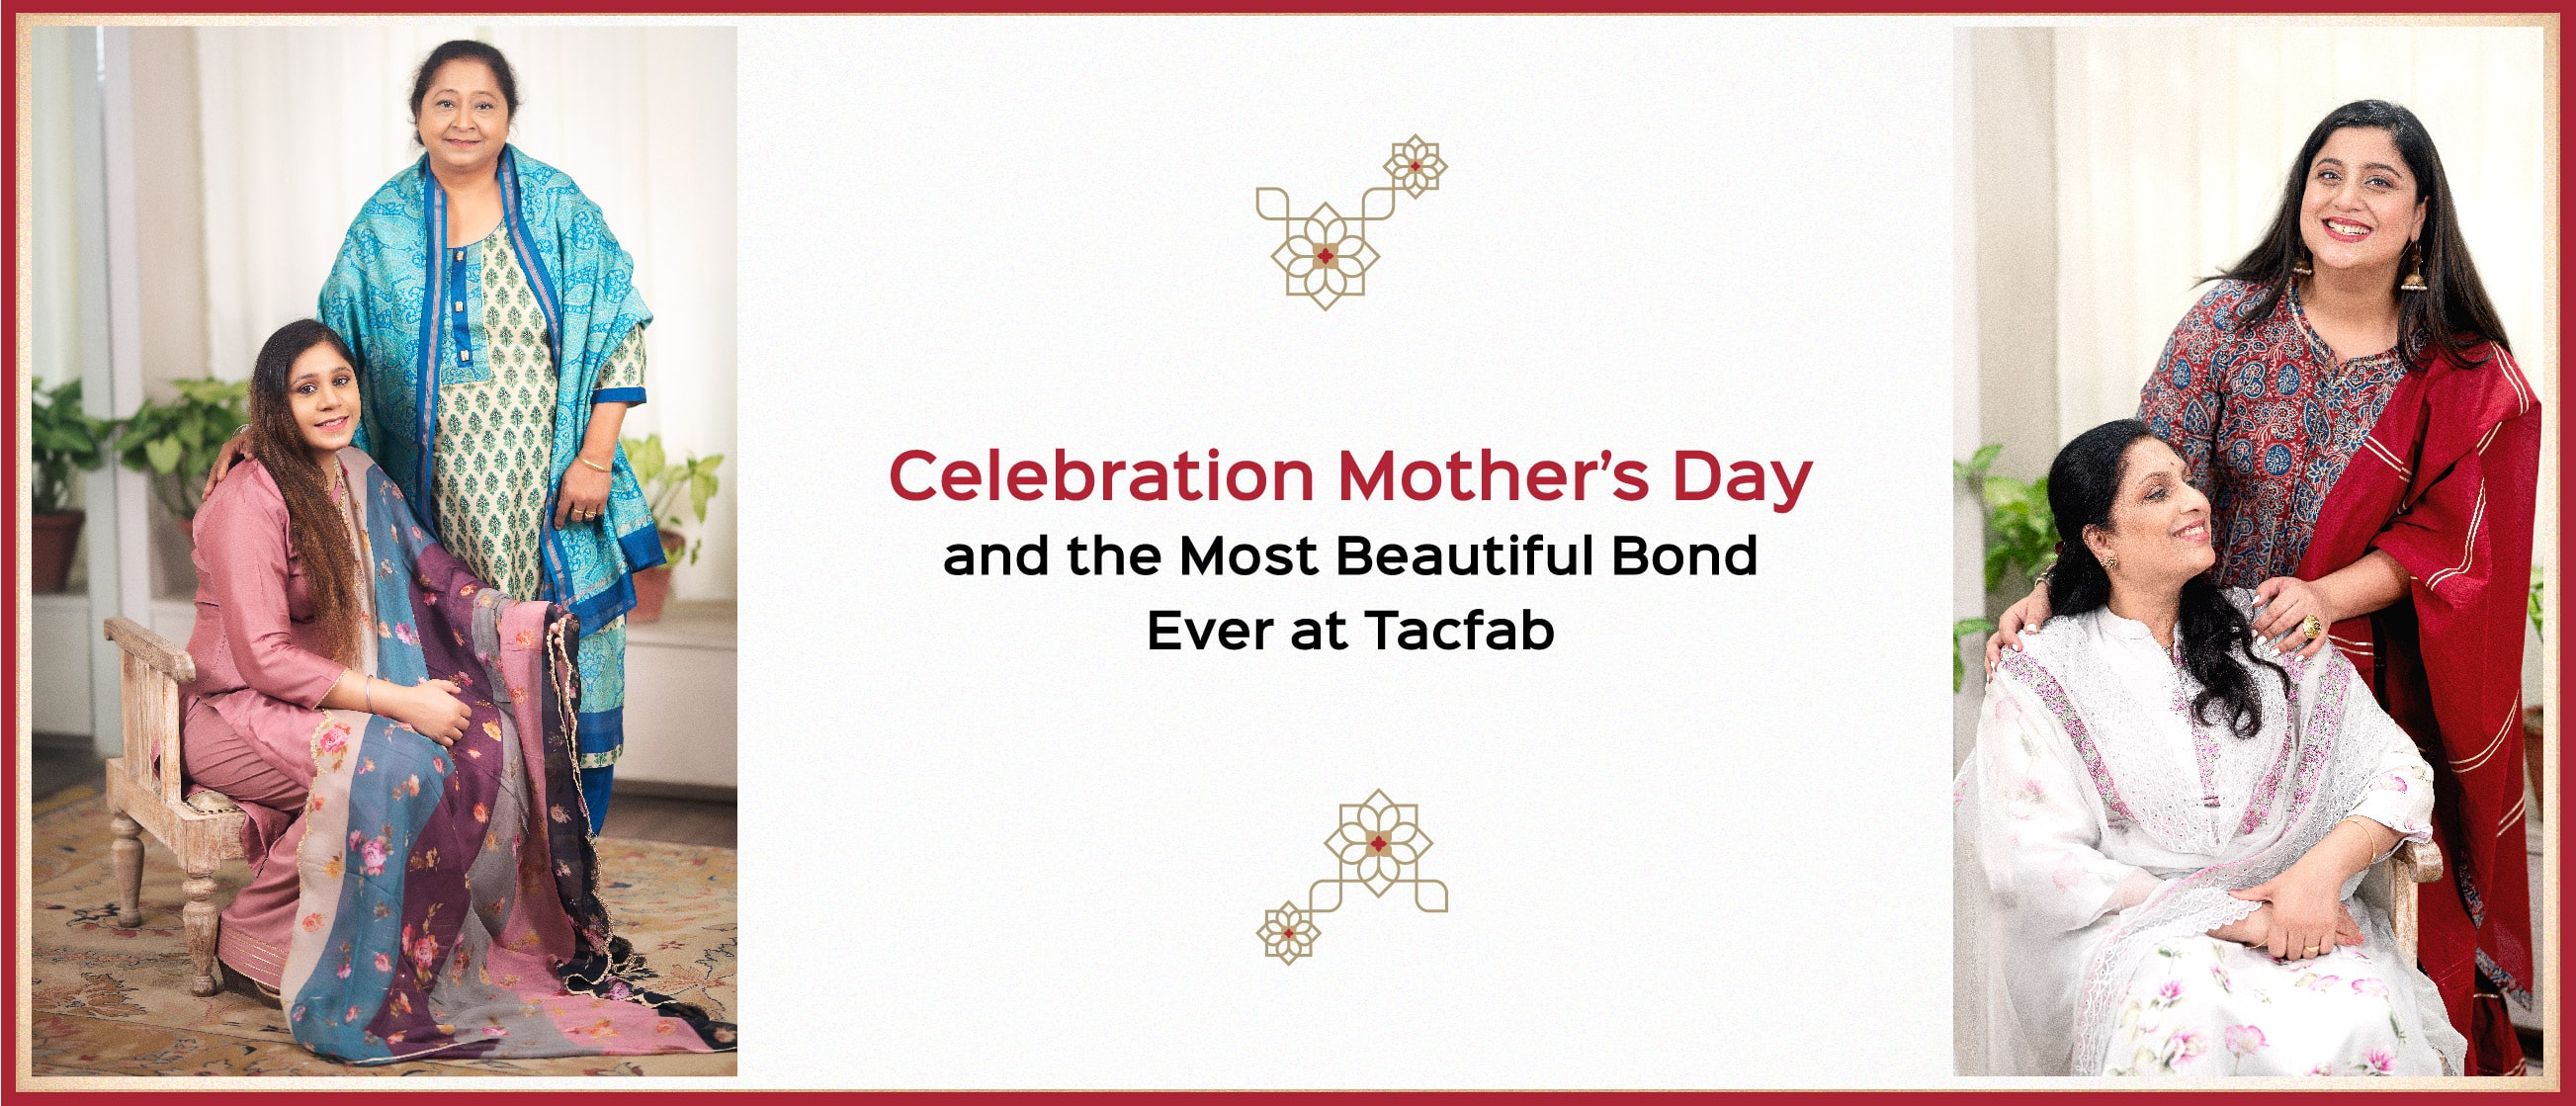 Celebrating Mother's Day and the Most Beautiful Bond Ever at Tacfab